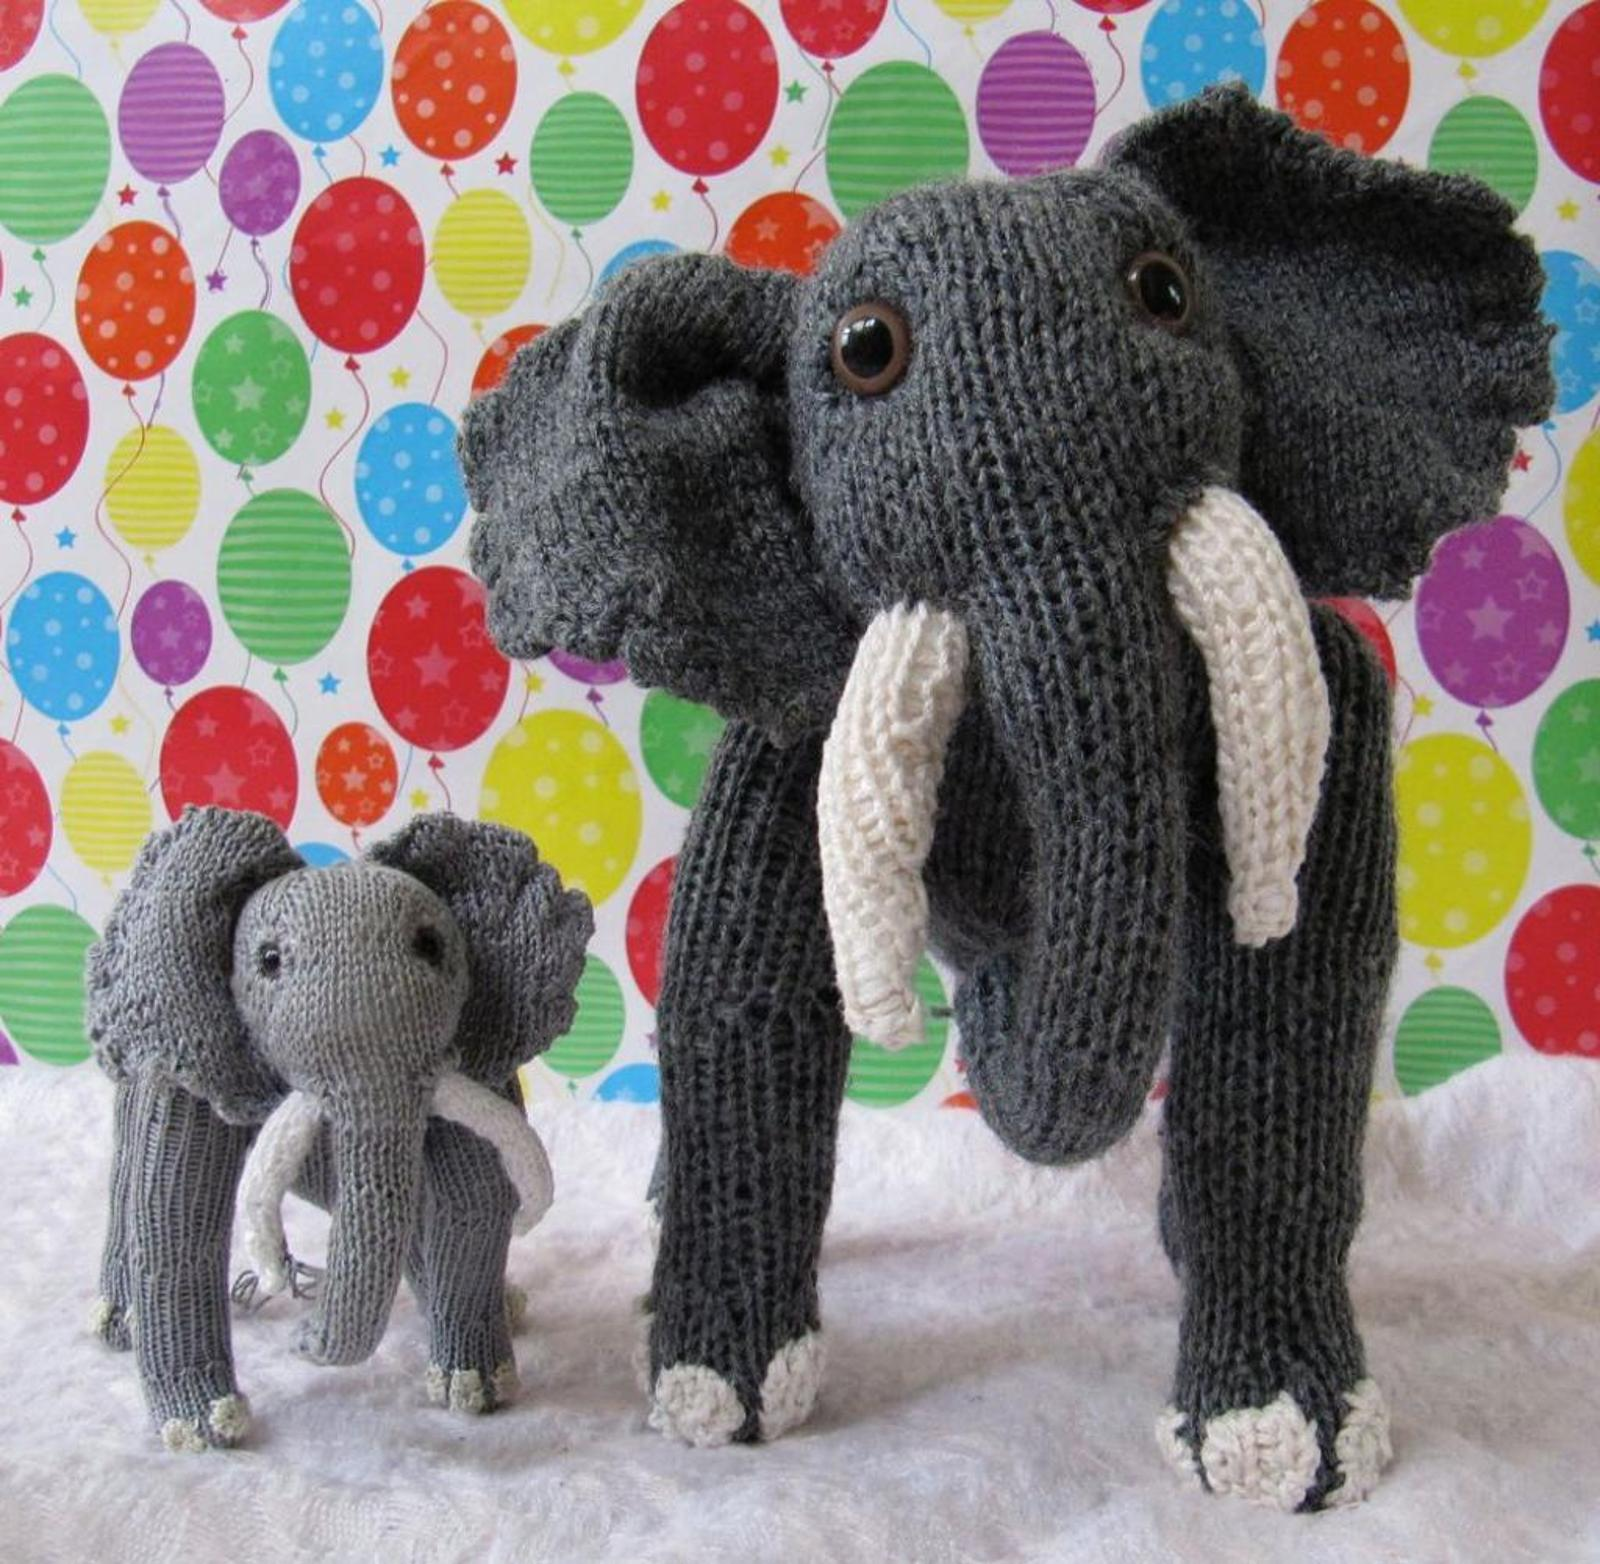 Elsie and Baby Elvis Elephant